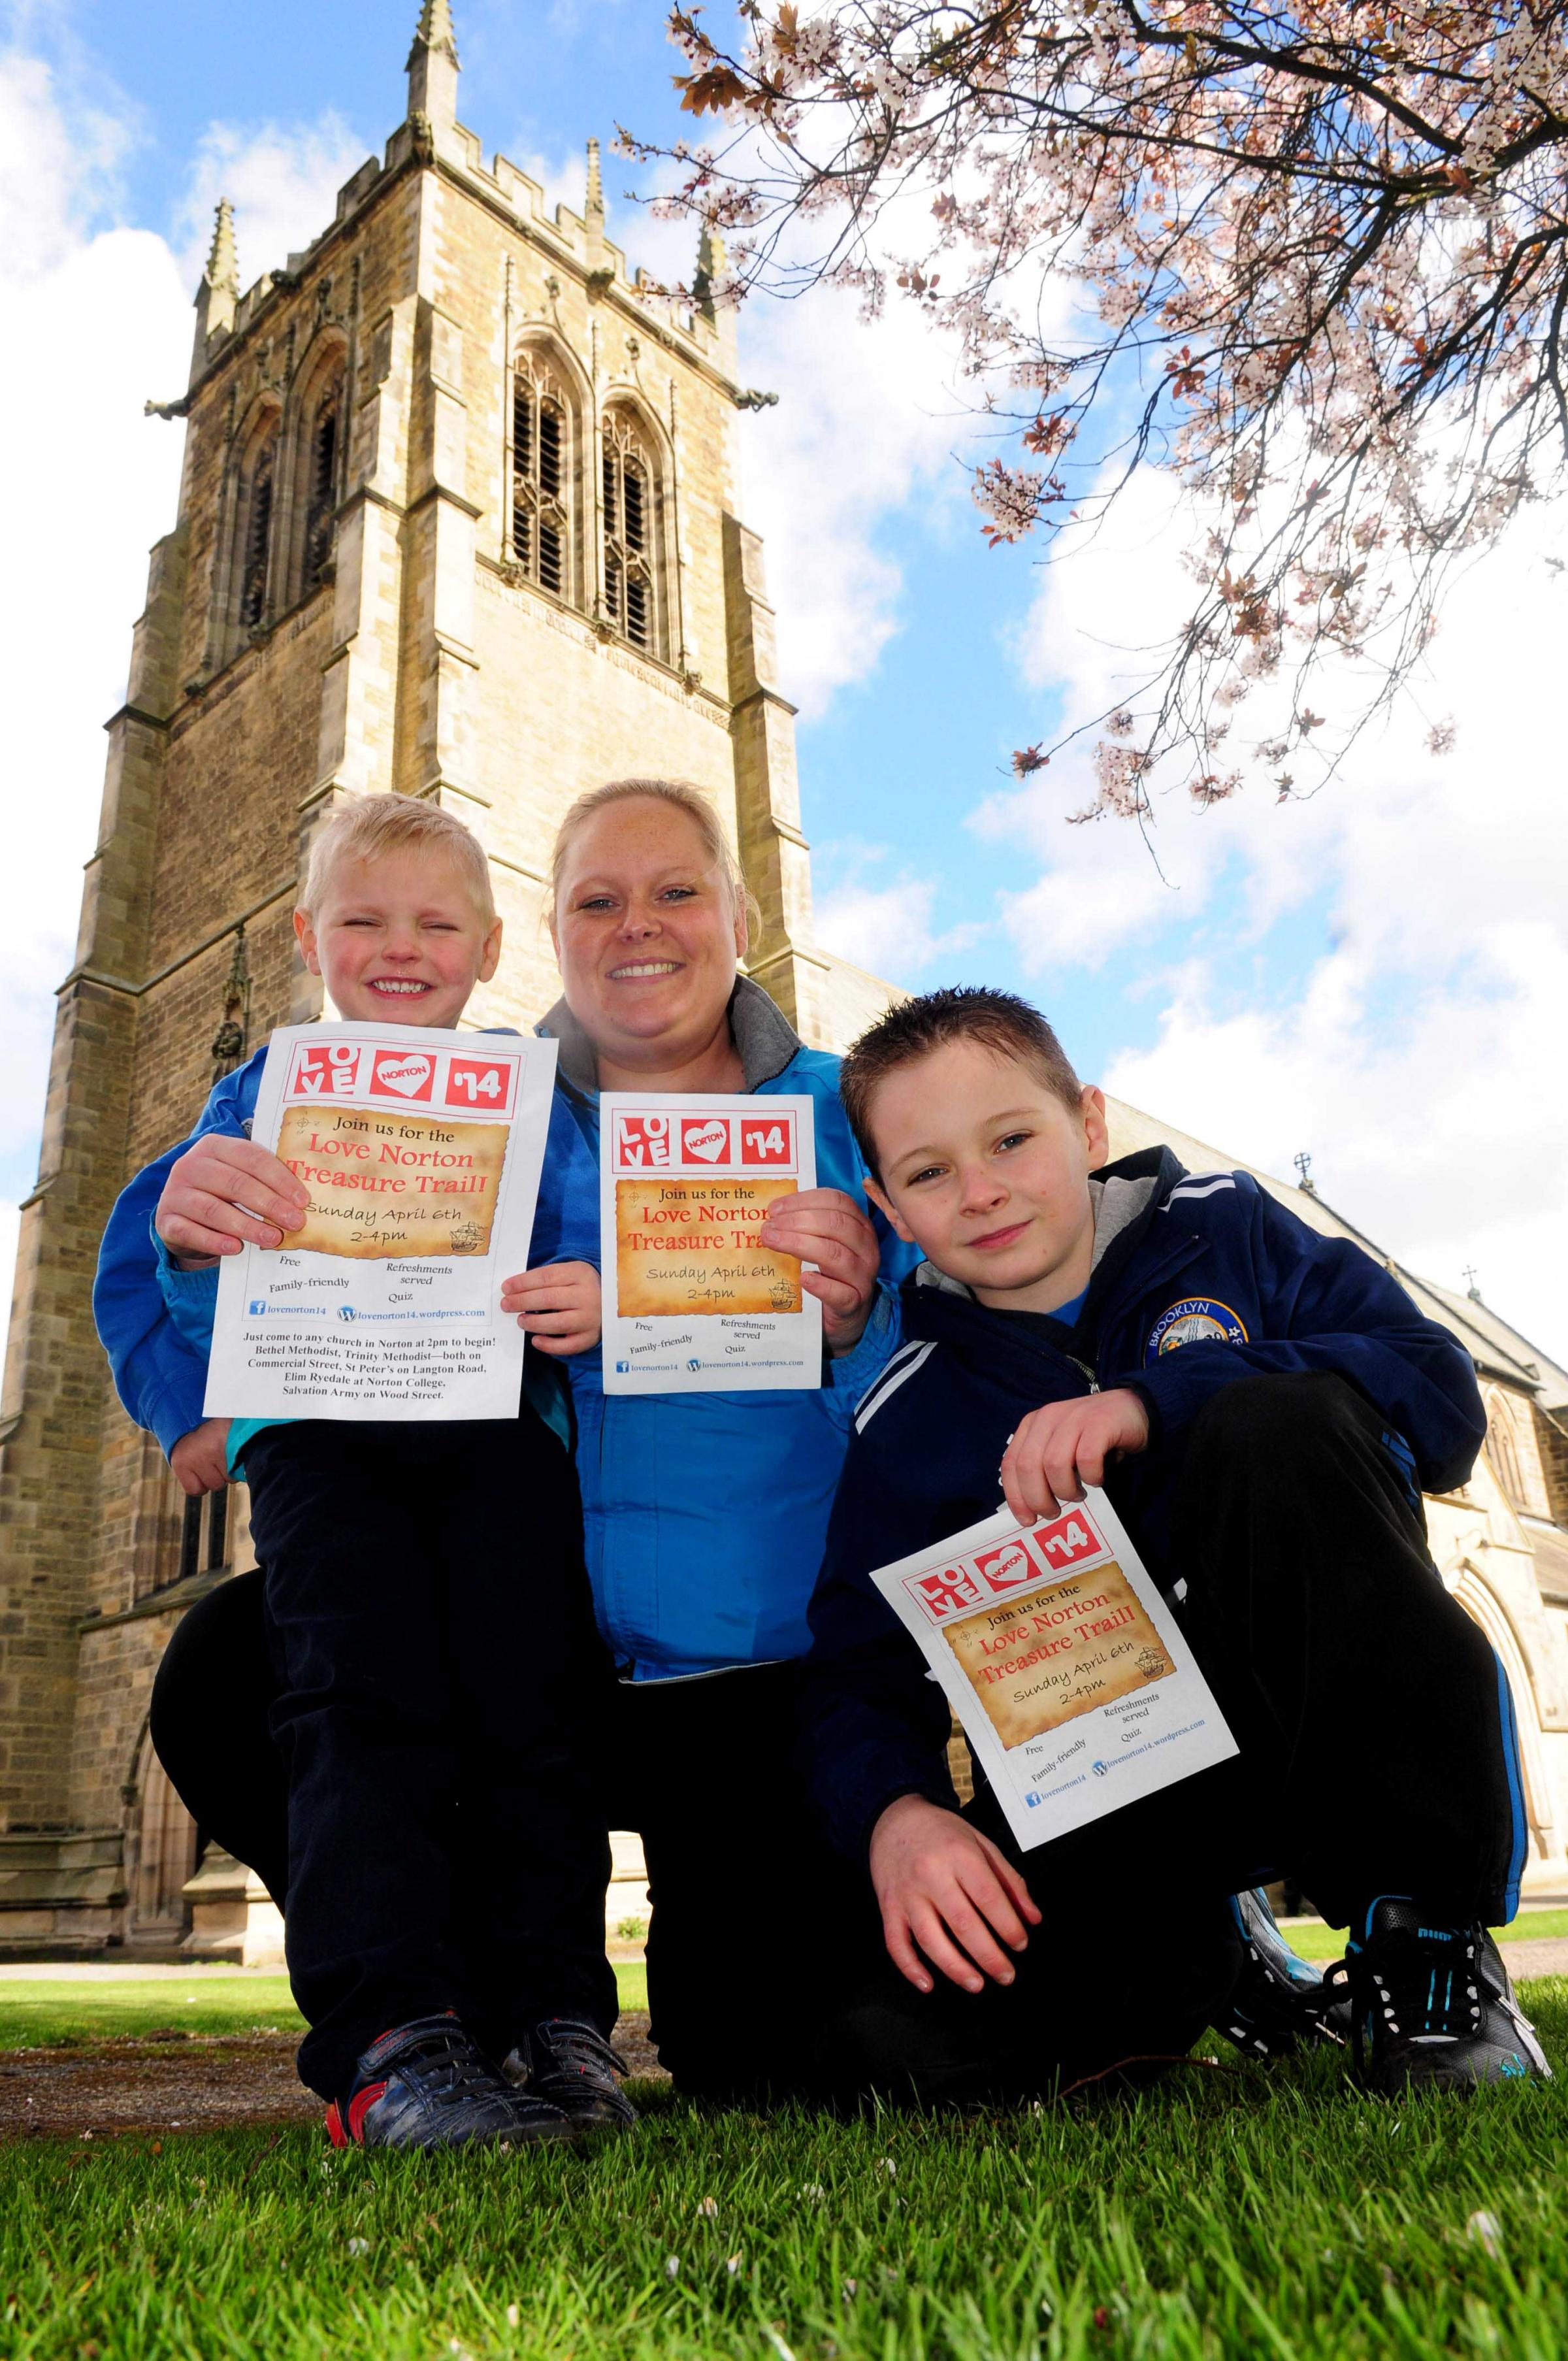 Jayne Gregg with her children Luke and Matthew Smithson promoting a treasure hunt as part of Love Norton 14